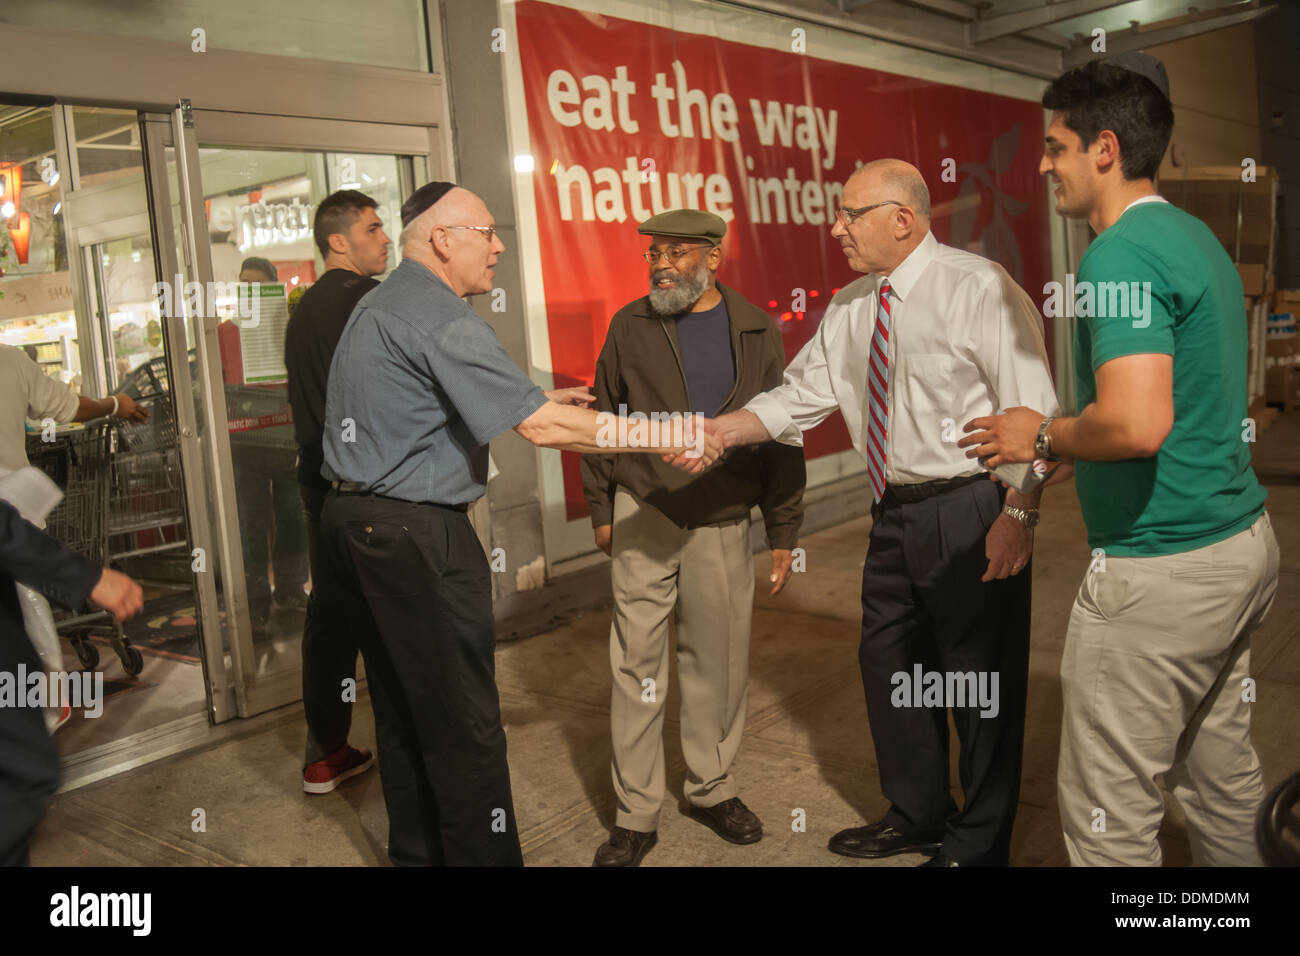 New York Mayoral candidate Sal Albanese, right in white shirt, campaigns - Stock Image